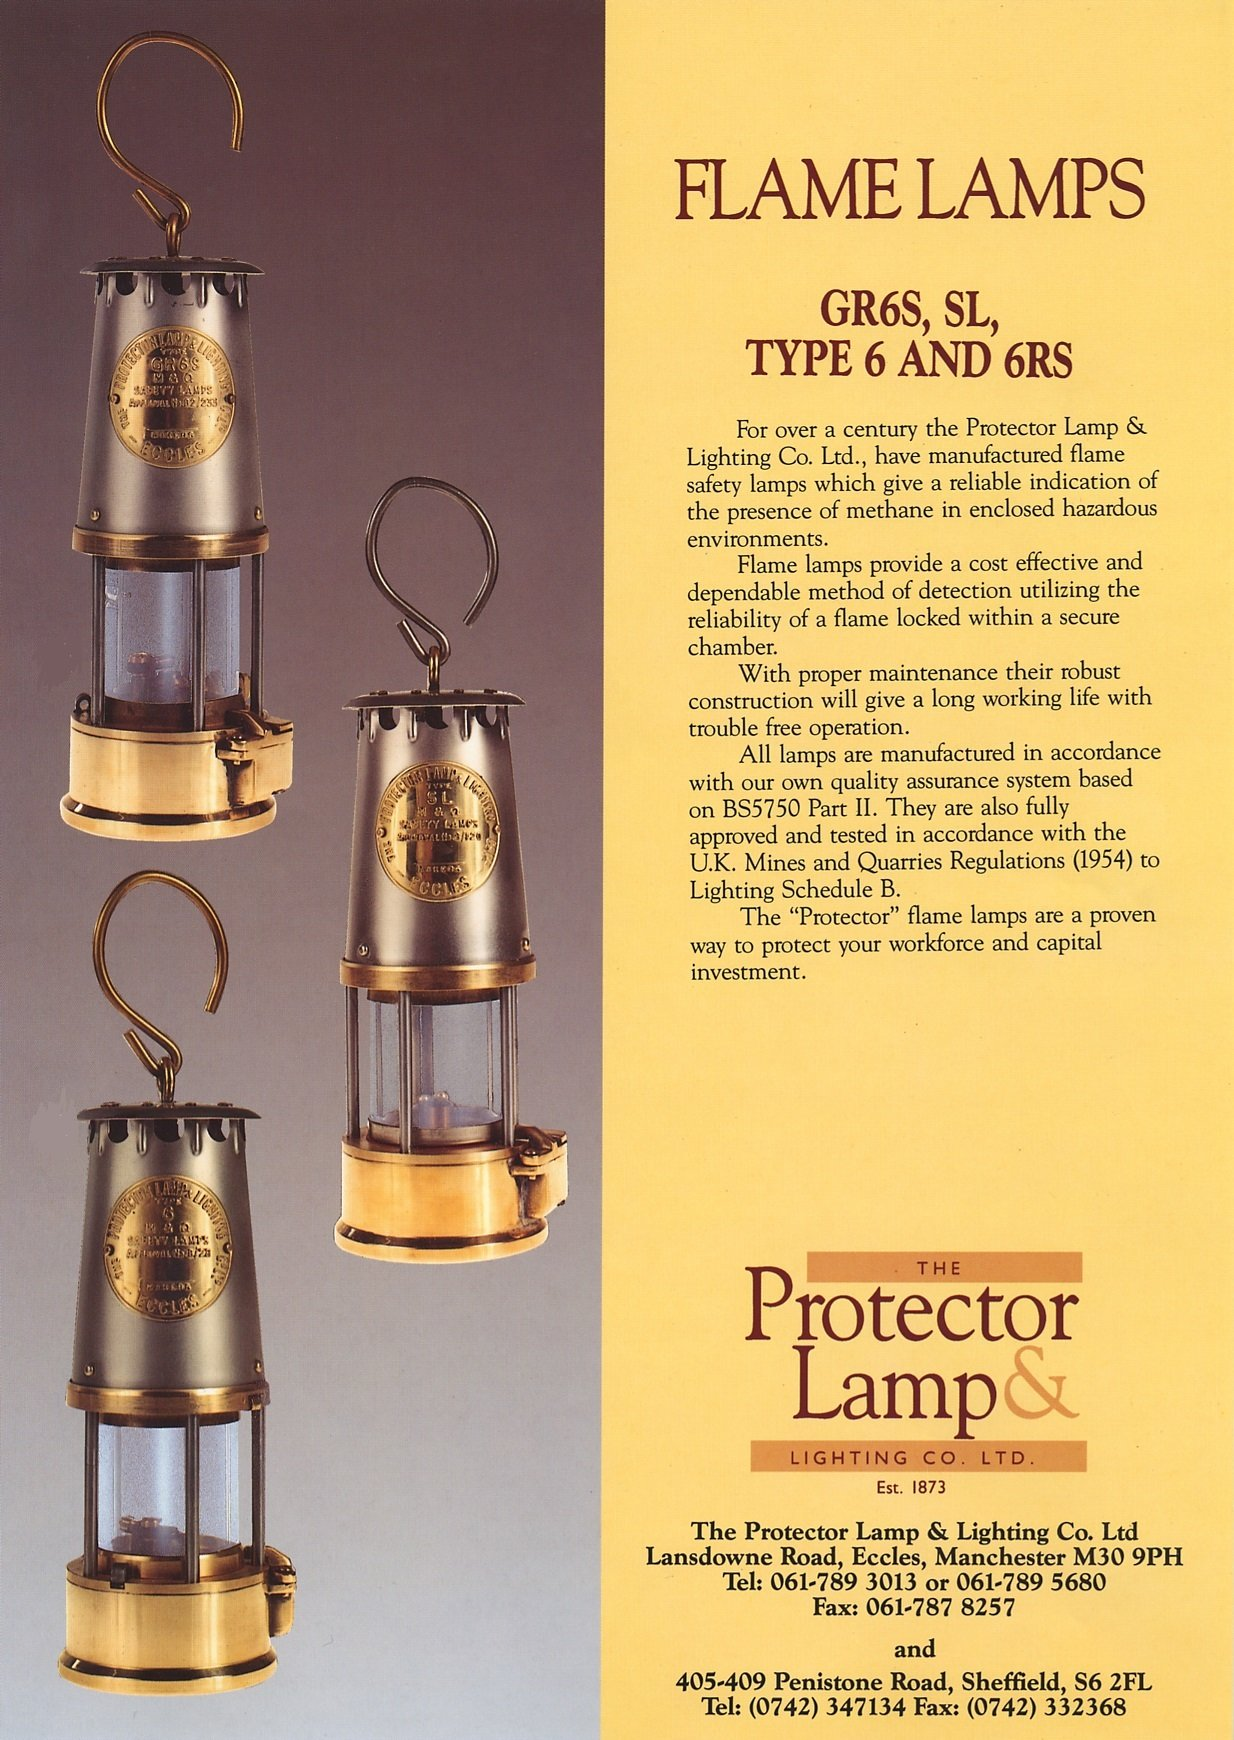 Flame Safety Lamp Miners Lamp Atex M2 Garforth Gr6s